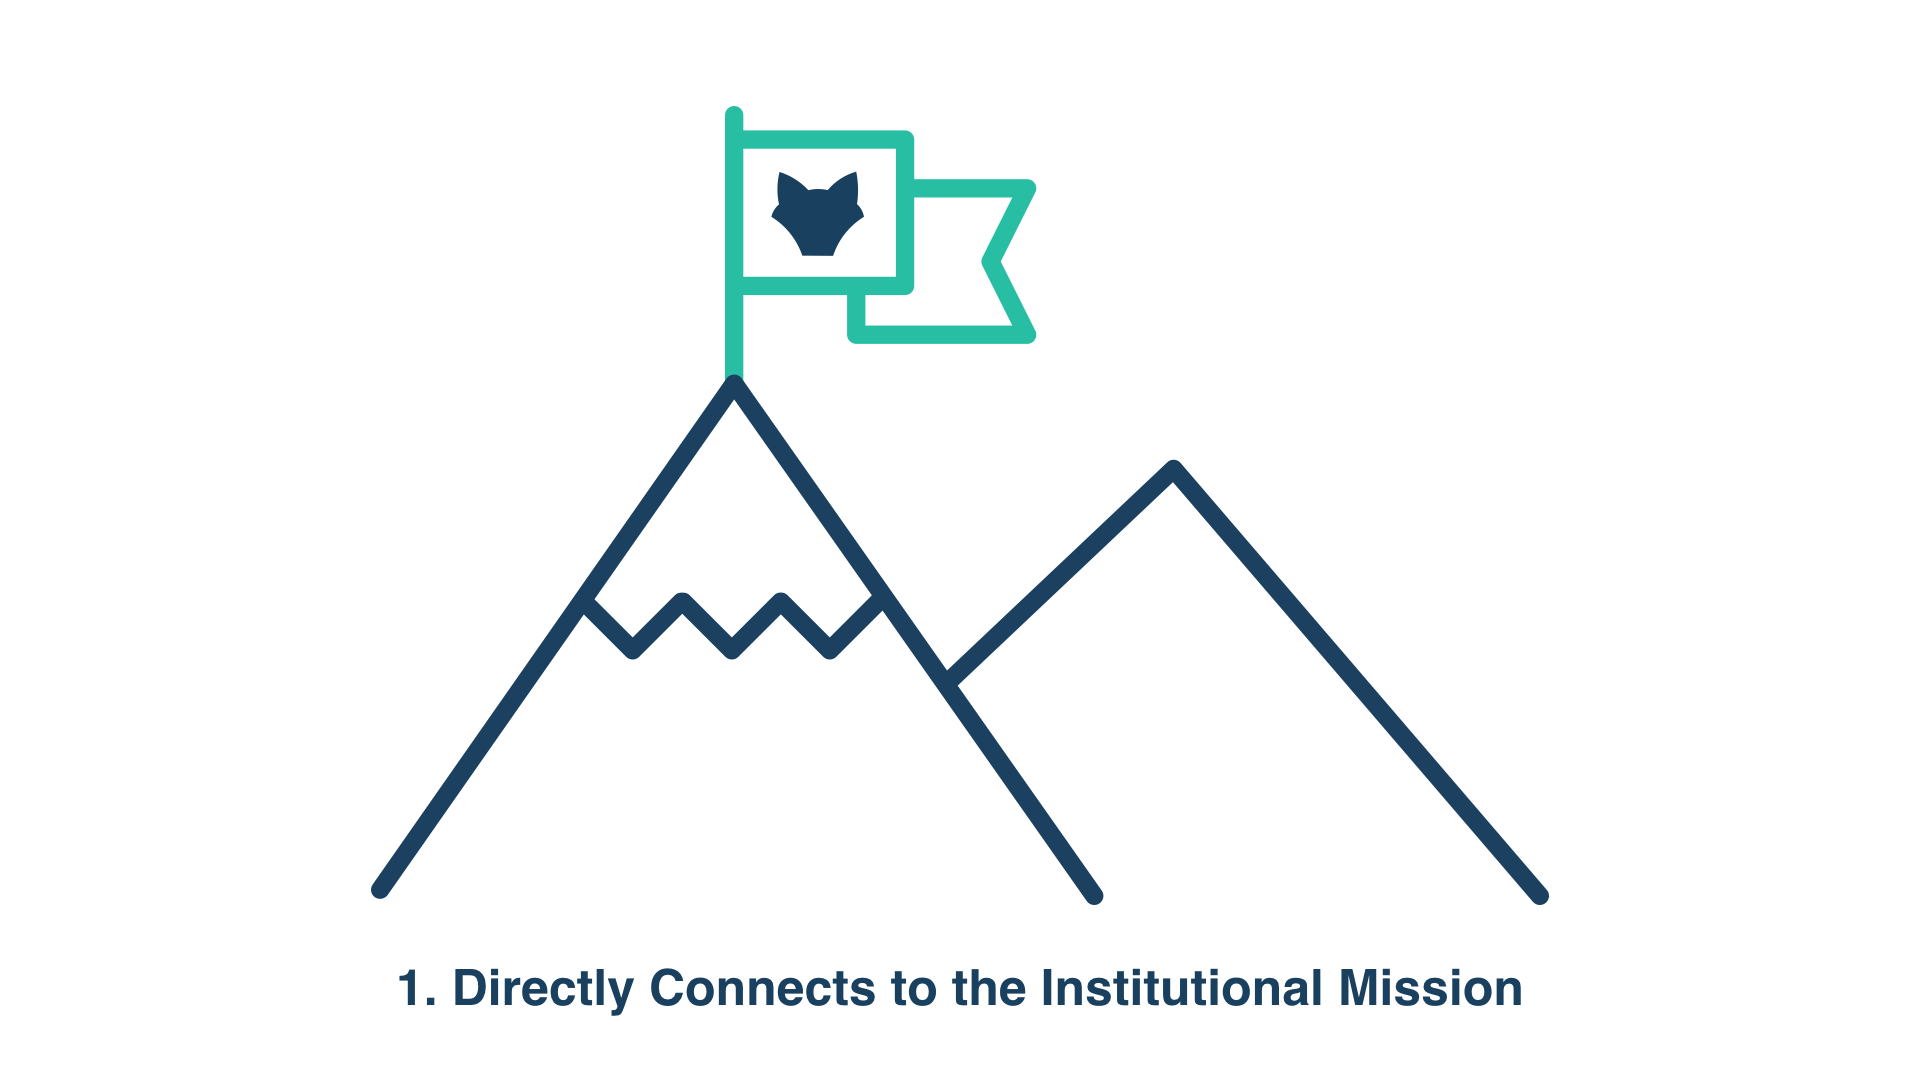 1. Directly Connects to the Institutional Mission